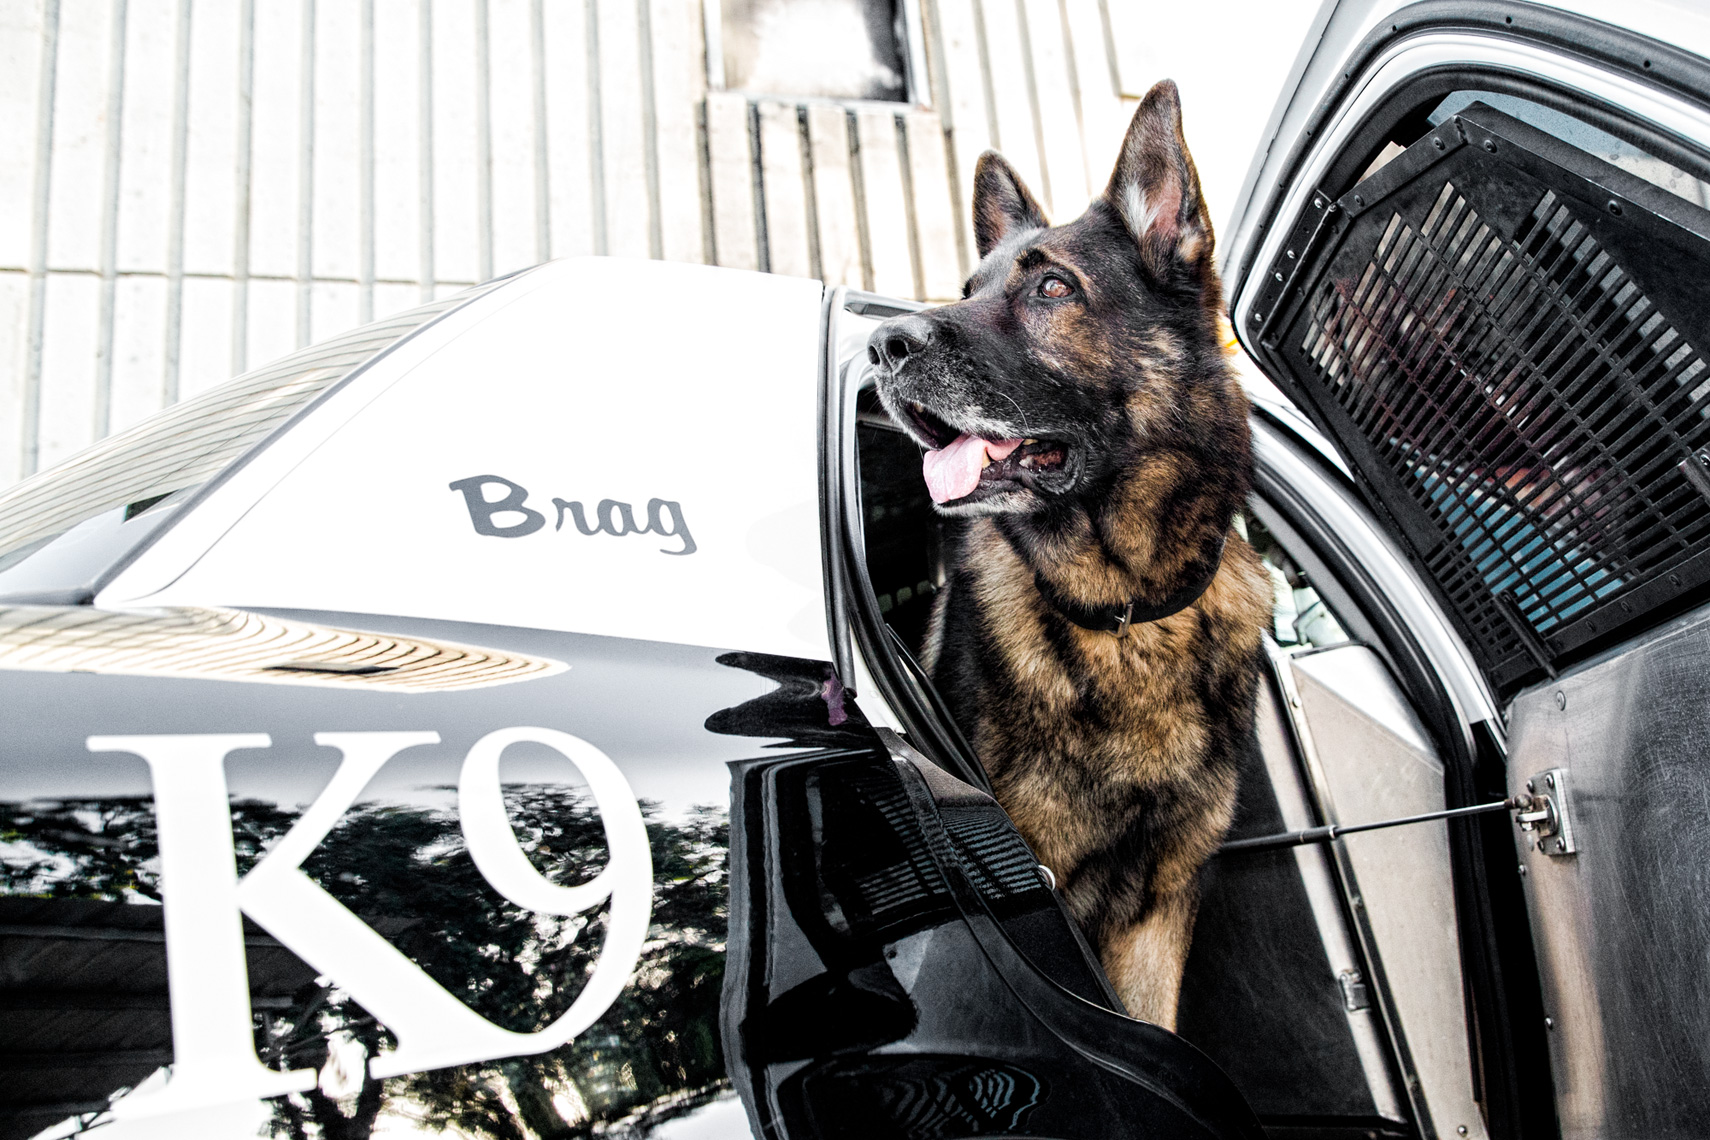 Los Angeles Dog Photography, Michael Brian, Police K-9 in patrol car, Santa Barbara Police, Brag